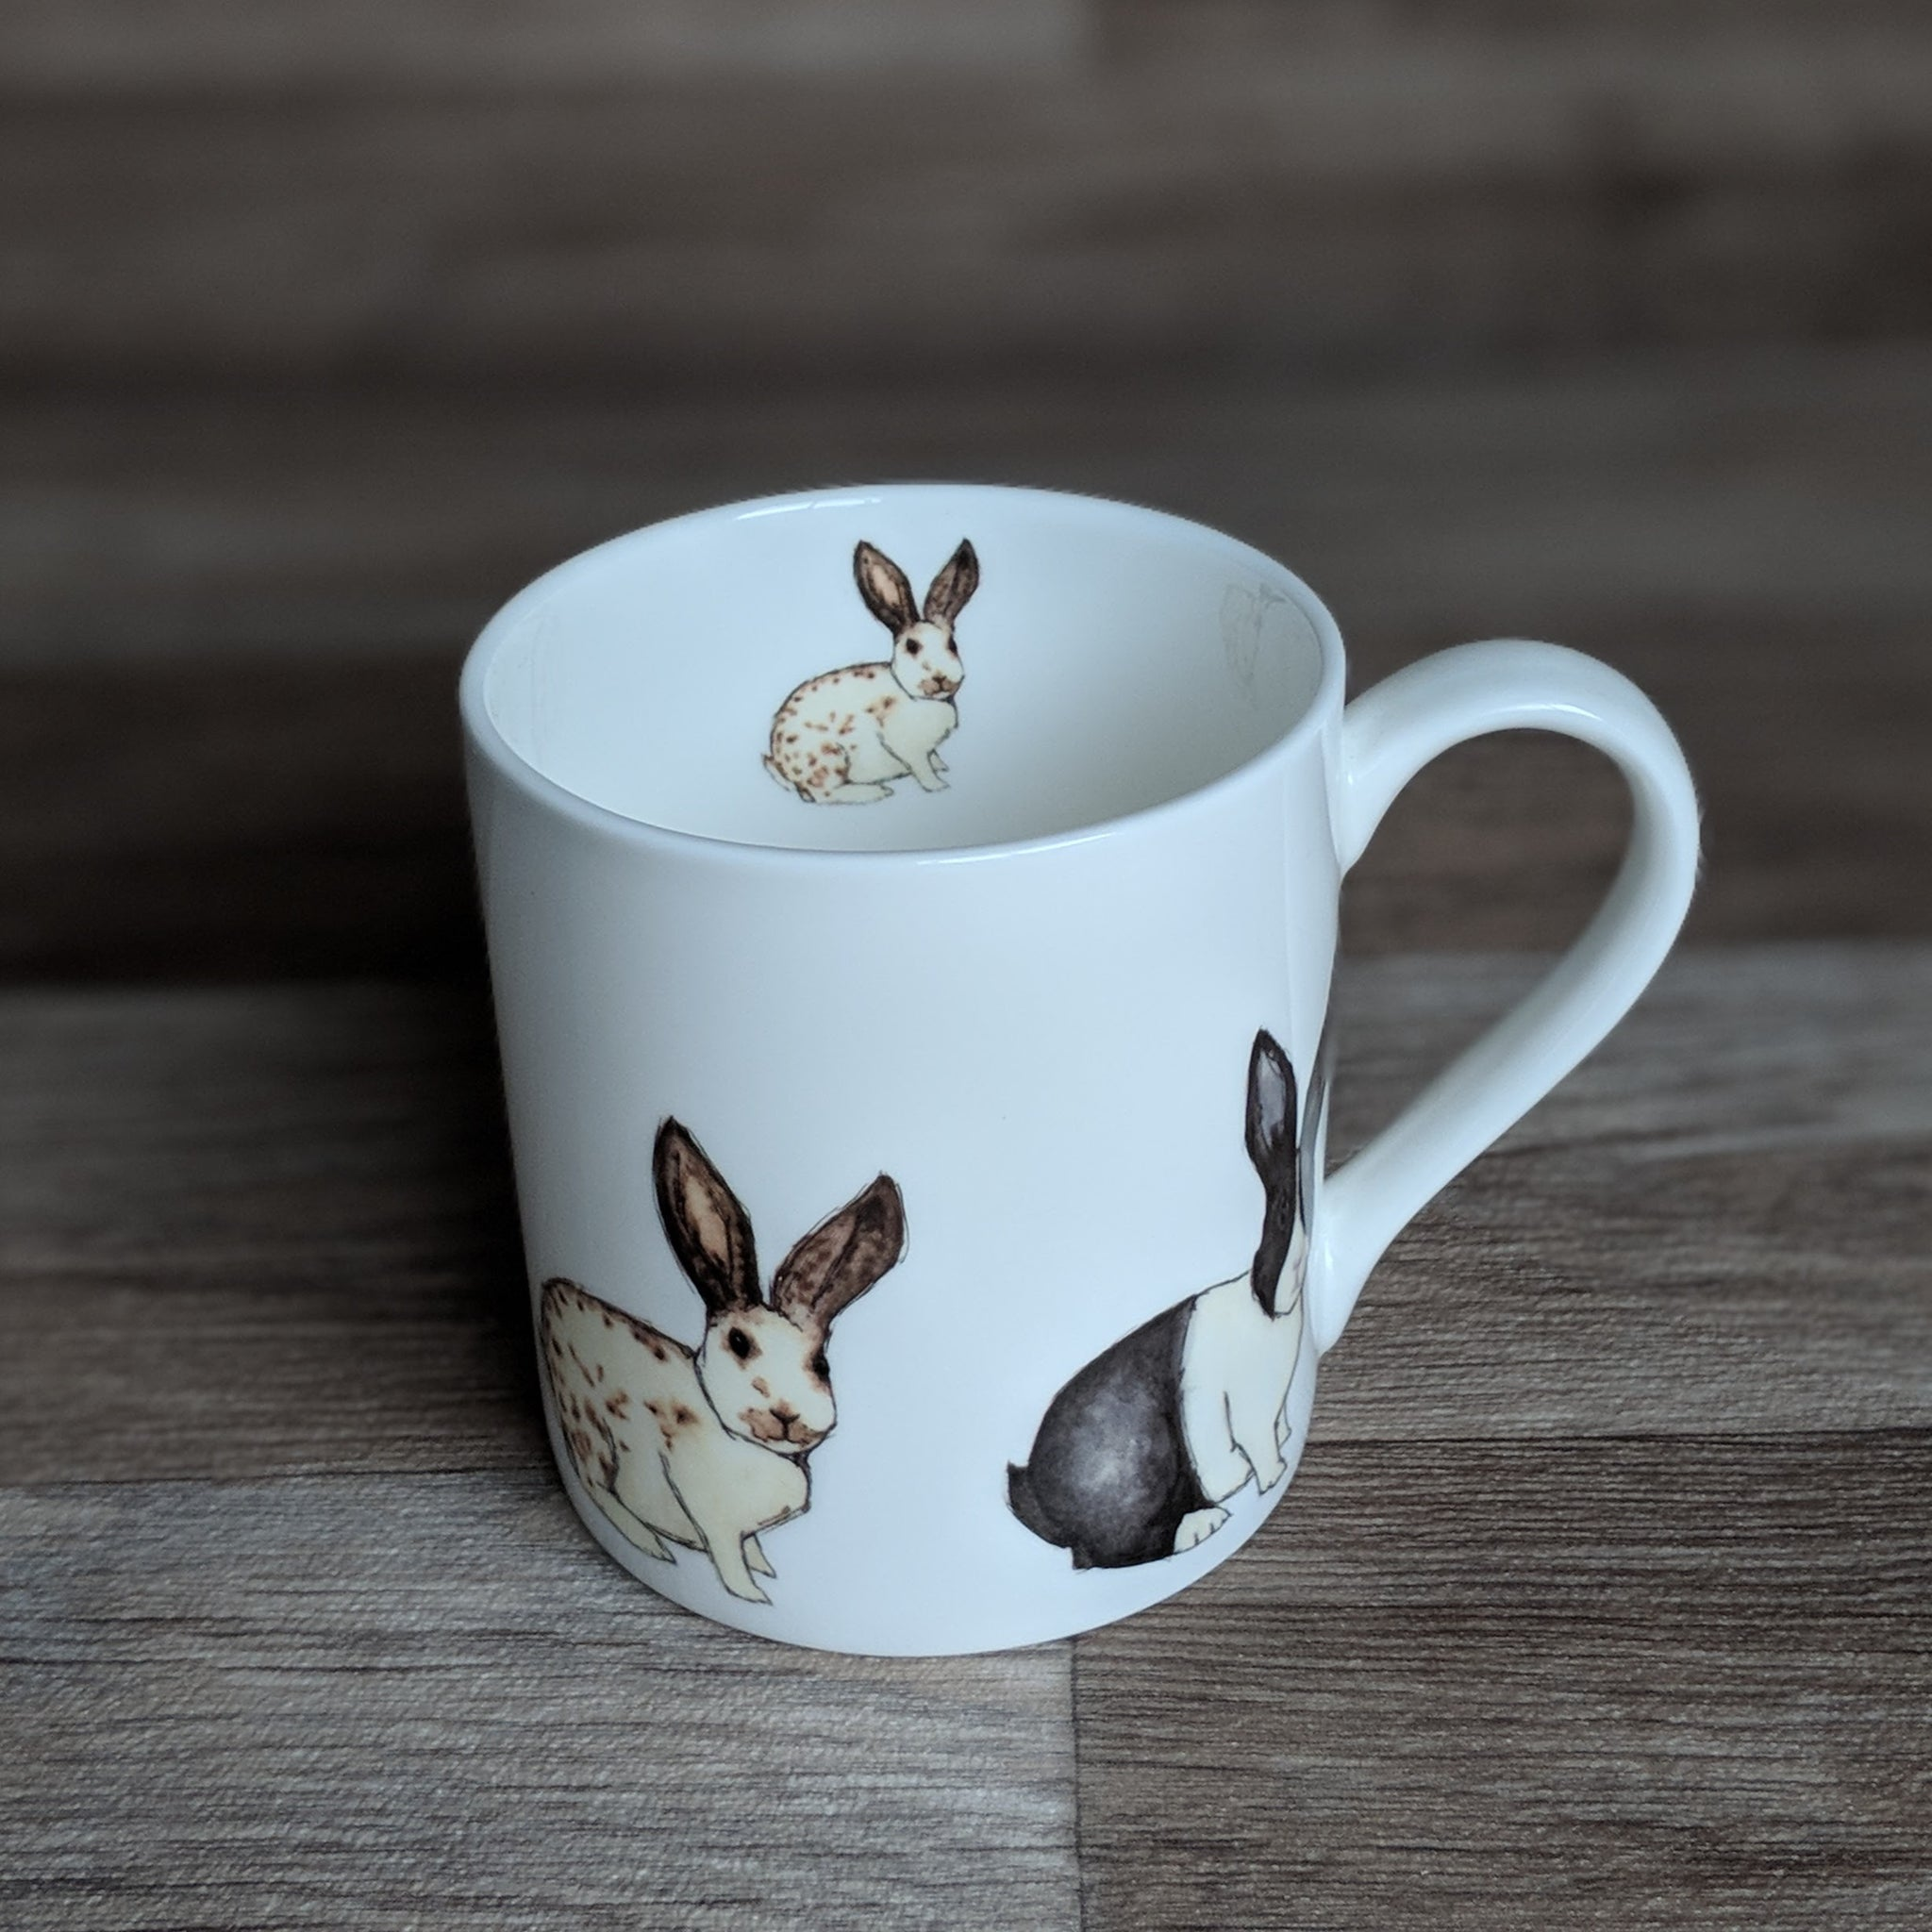 Rabbit Mug - bunny mug - Train Design - Everything Bunny Rabbit - with fine bone china mug with rabbit design on